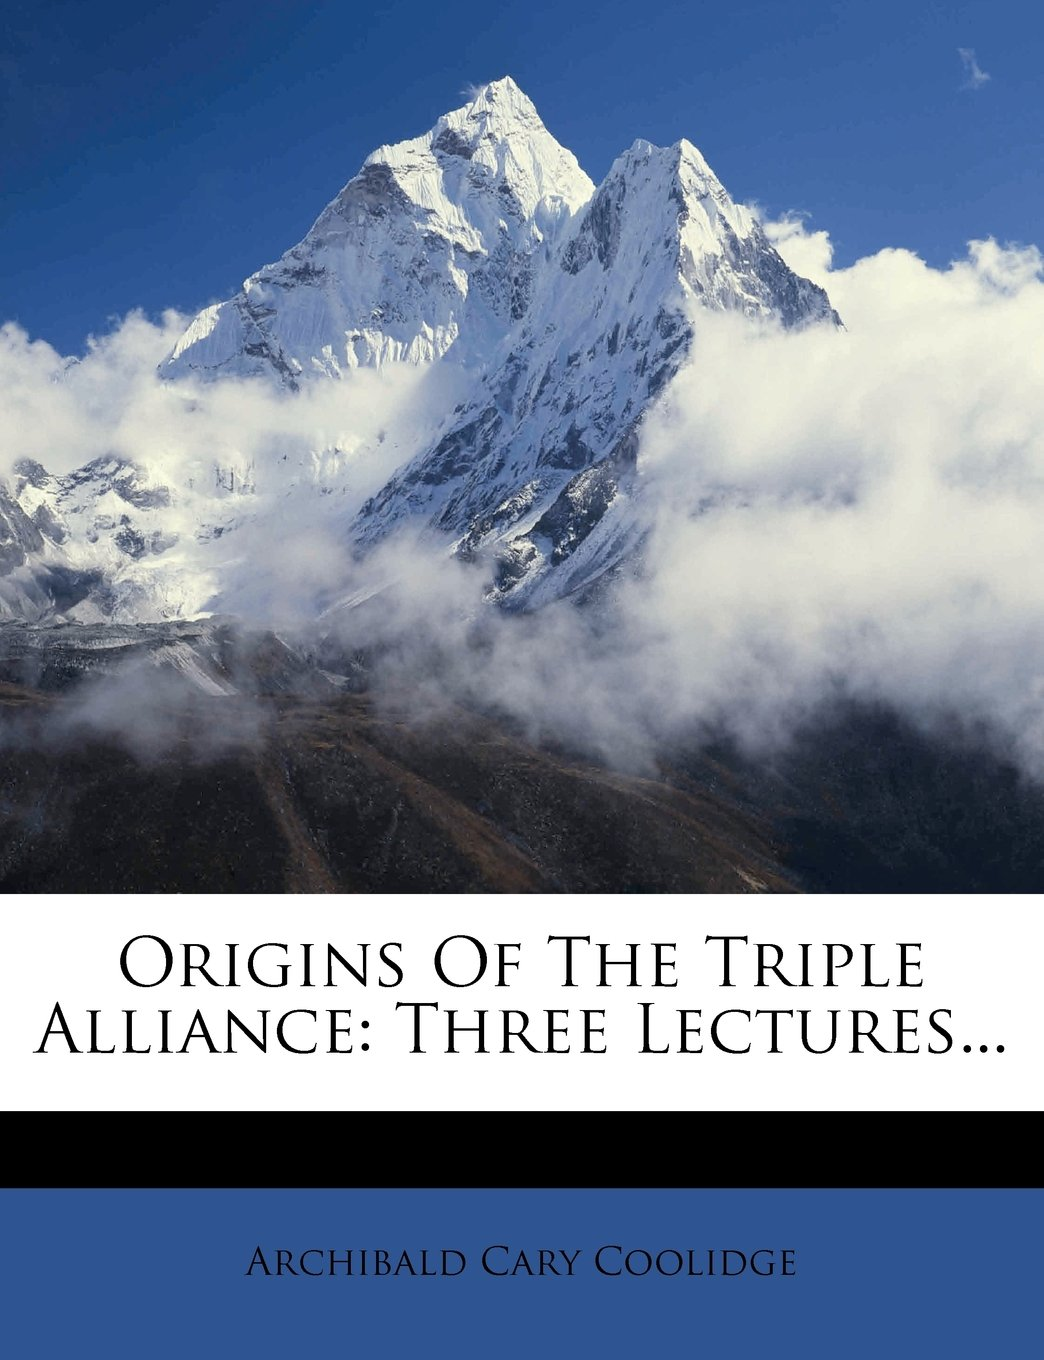 Origins of the Triple Alliance: Three Lectures... pdf